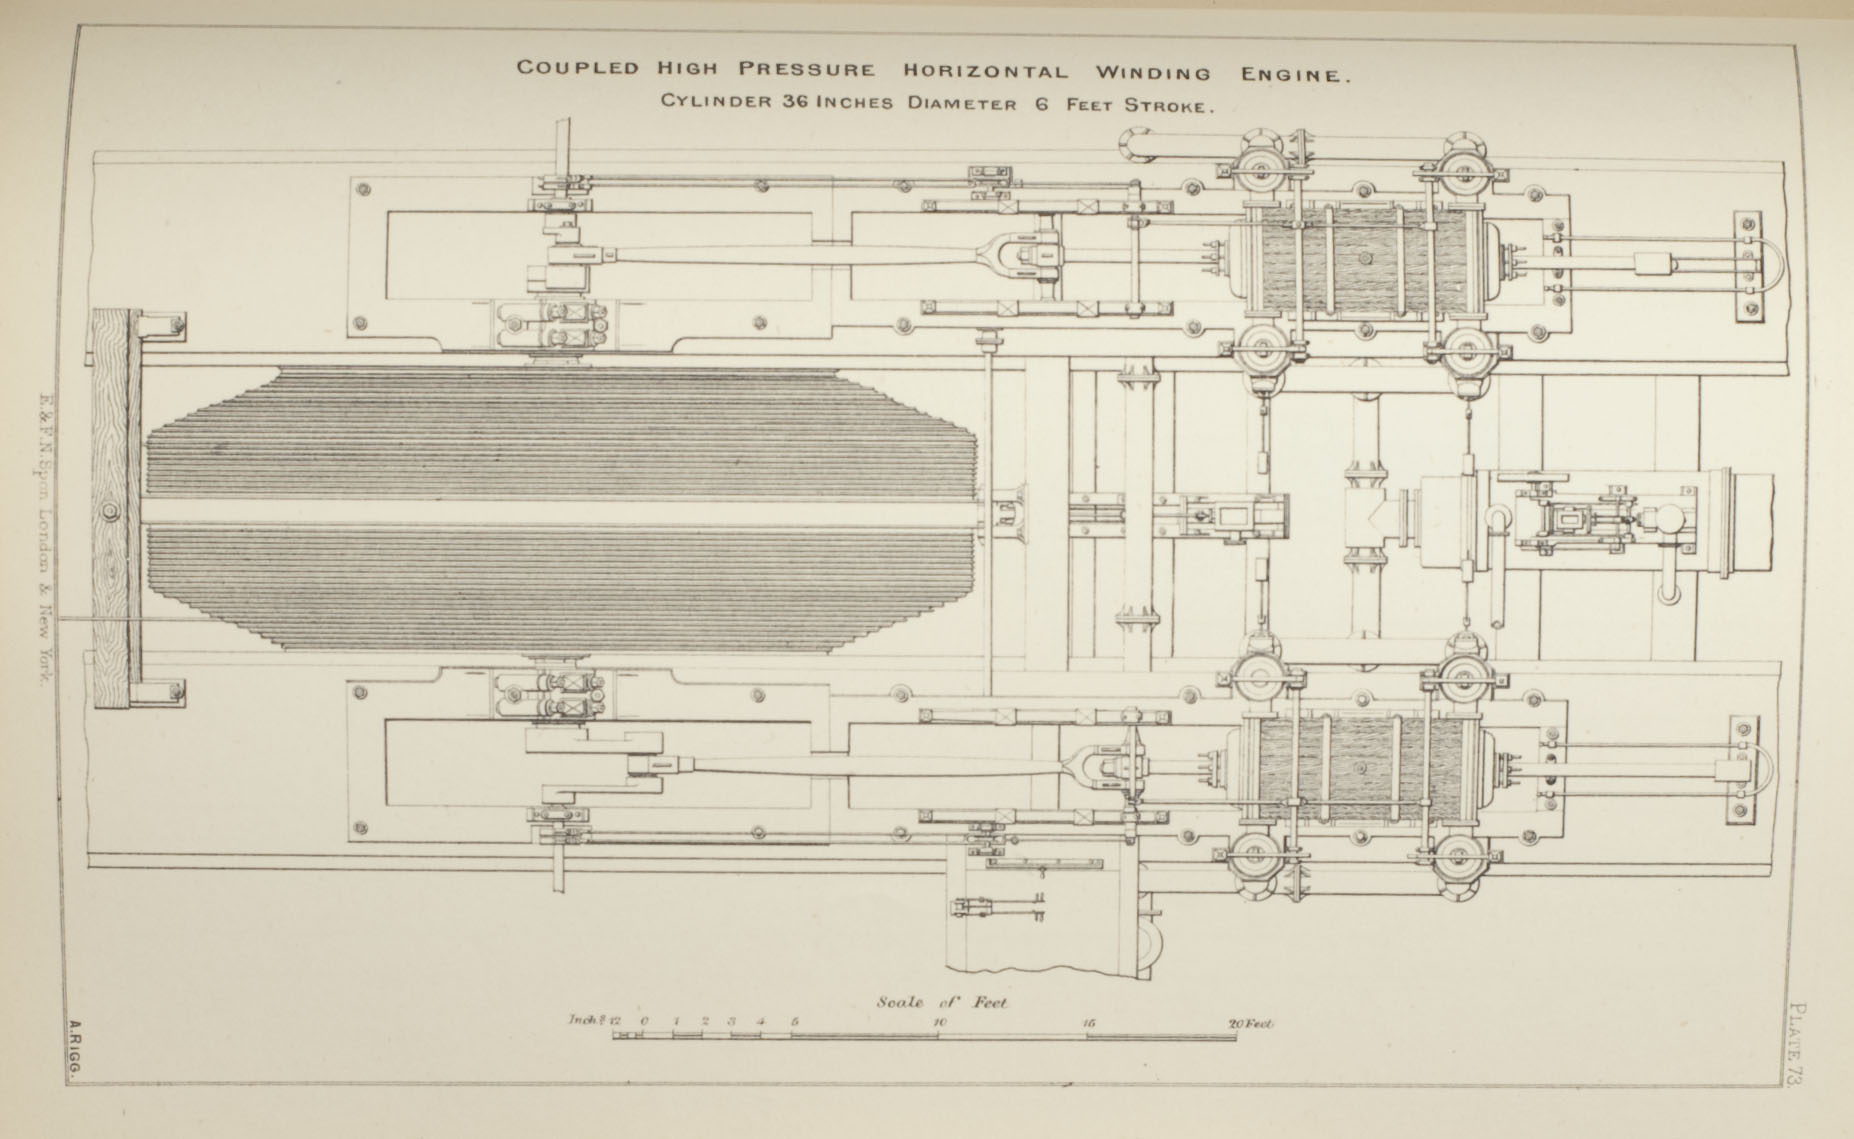 Coupled high pressure horizontal winding engine